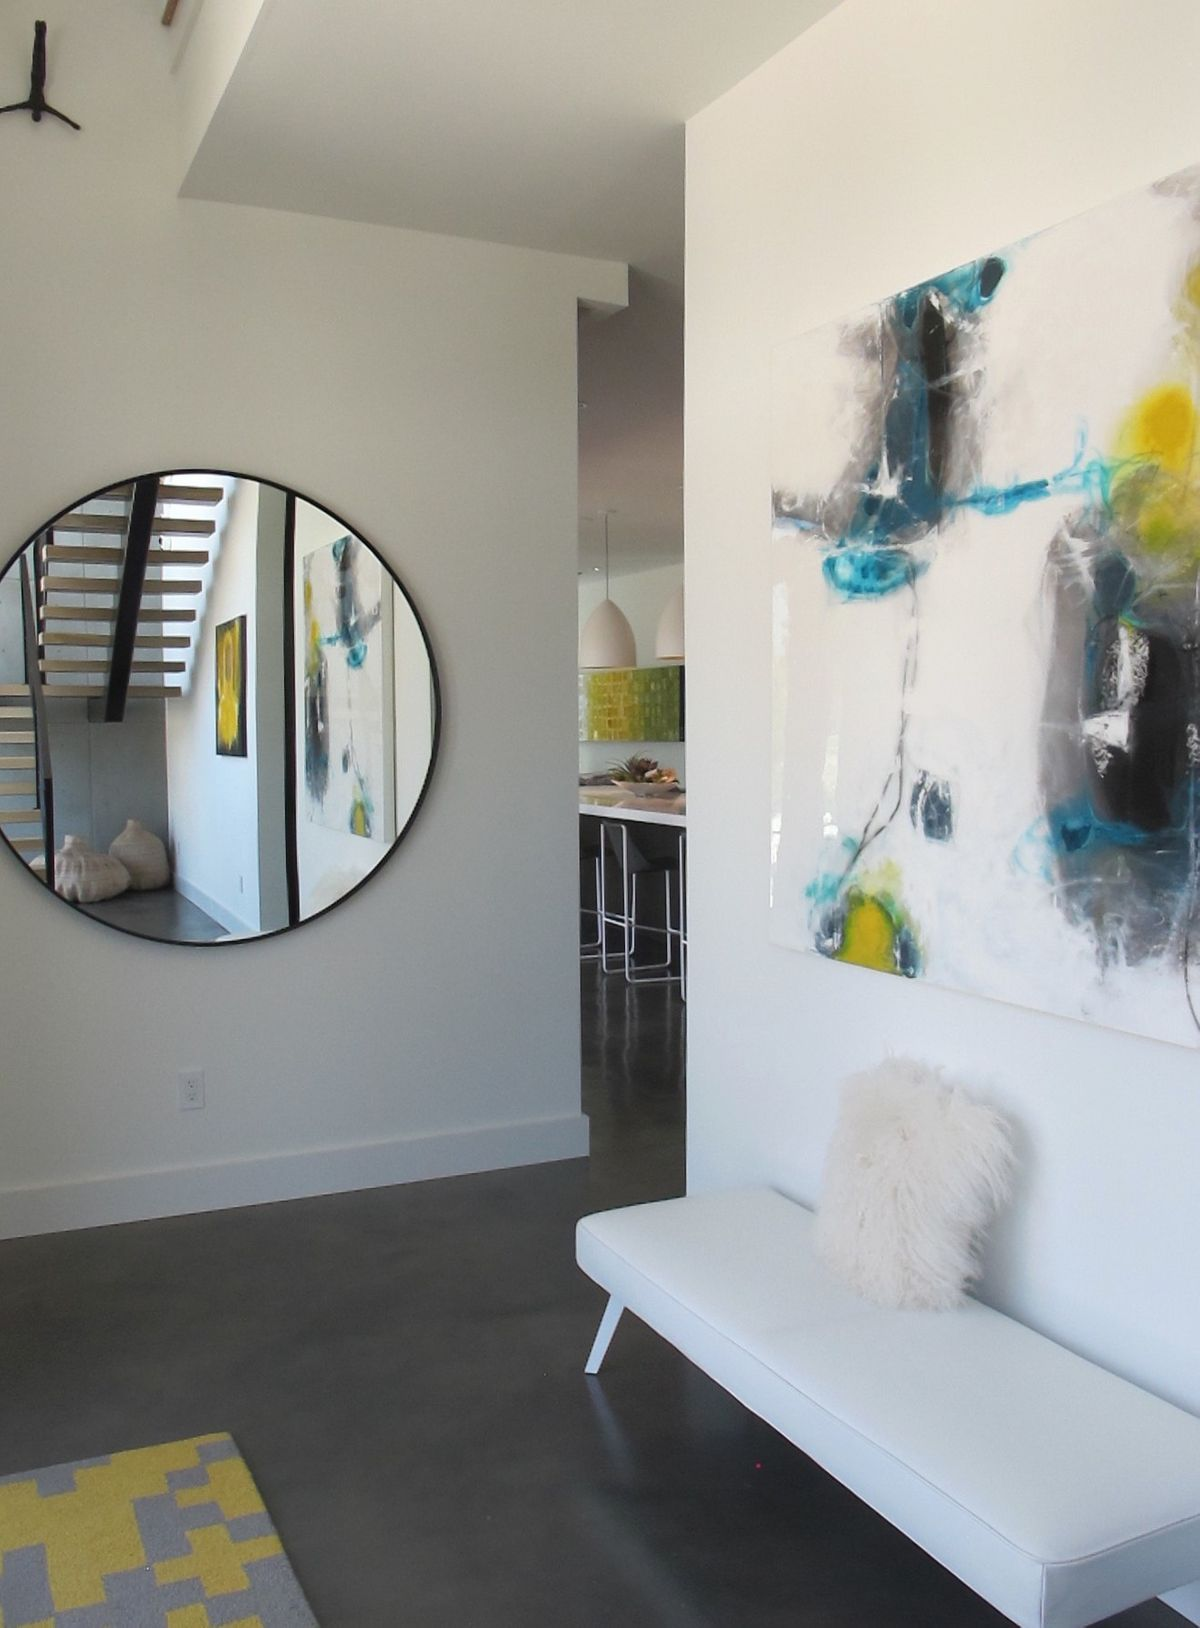 Ella Contemporary Modern House Photo Video Shoot Location Dallas 05.jpg